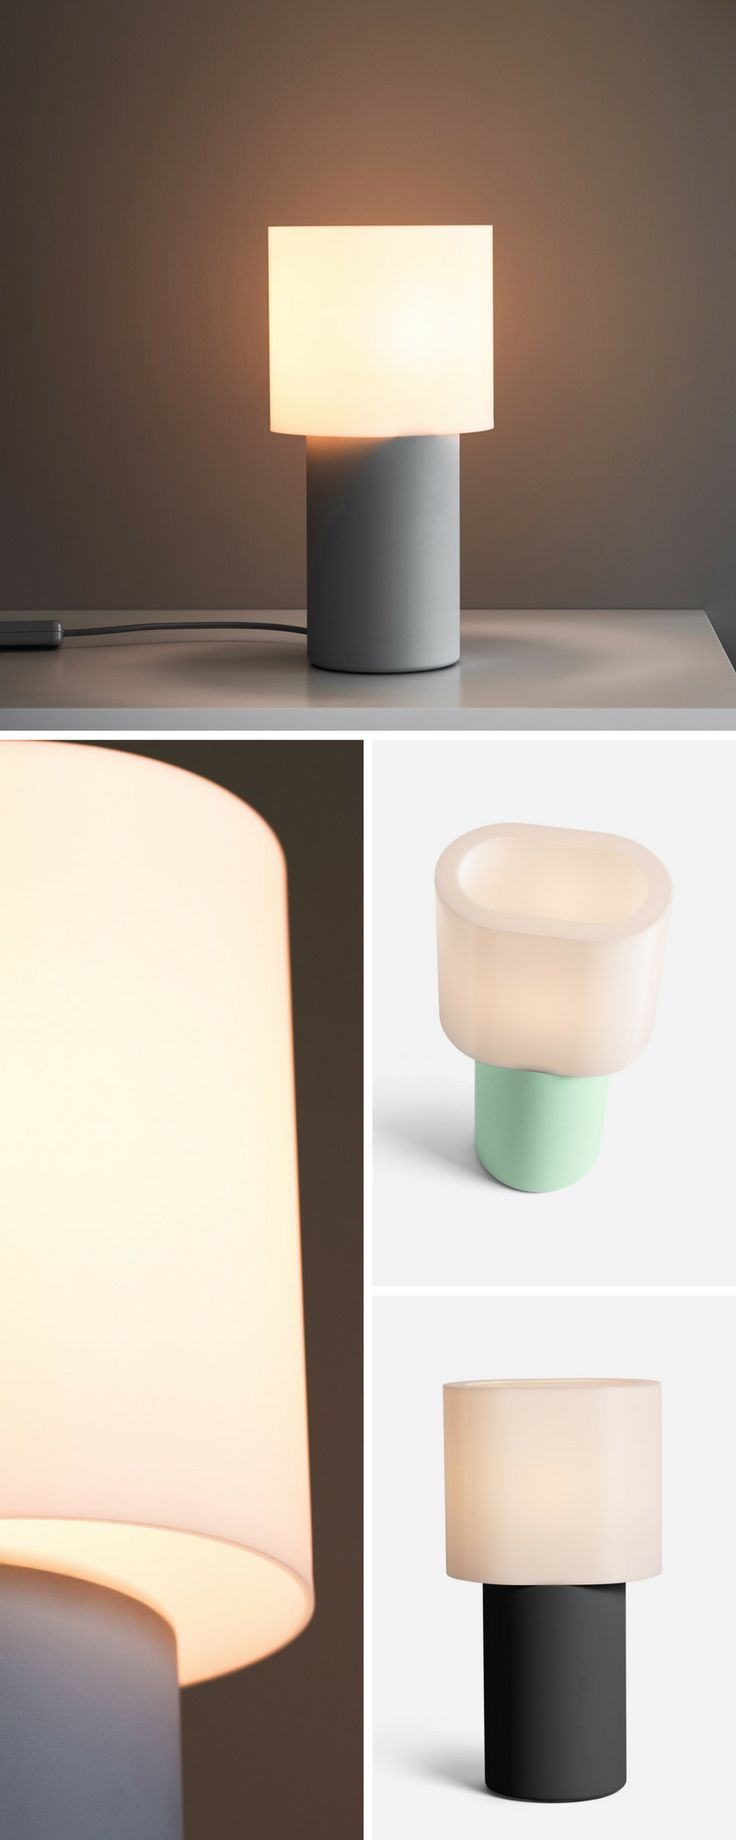 "This modern table lamp will look great in your loft. Goes just as well with concrete countertops as it does with your Eames chair. Inspired by mid century design but fits in well with contemporary architecture. It's 3d printed, made in the USA, and uses LED light bulbs.    ""Scoop"" table lamp designed by Scott Doty - Industrial Design for Gantri.  #lighting #lamp #design #architectureDesign #giftforhim"